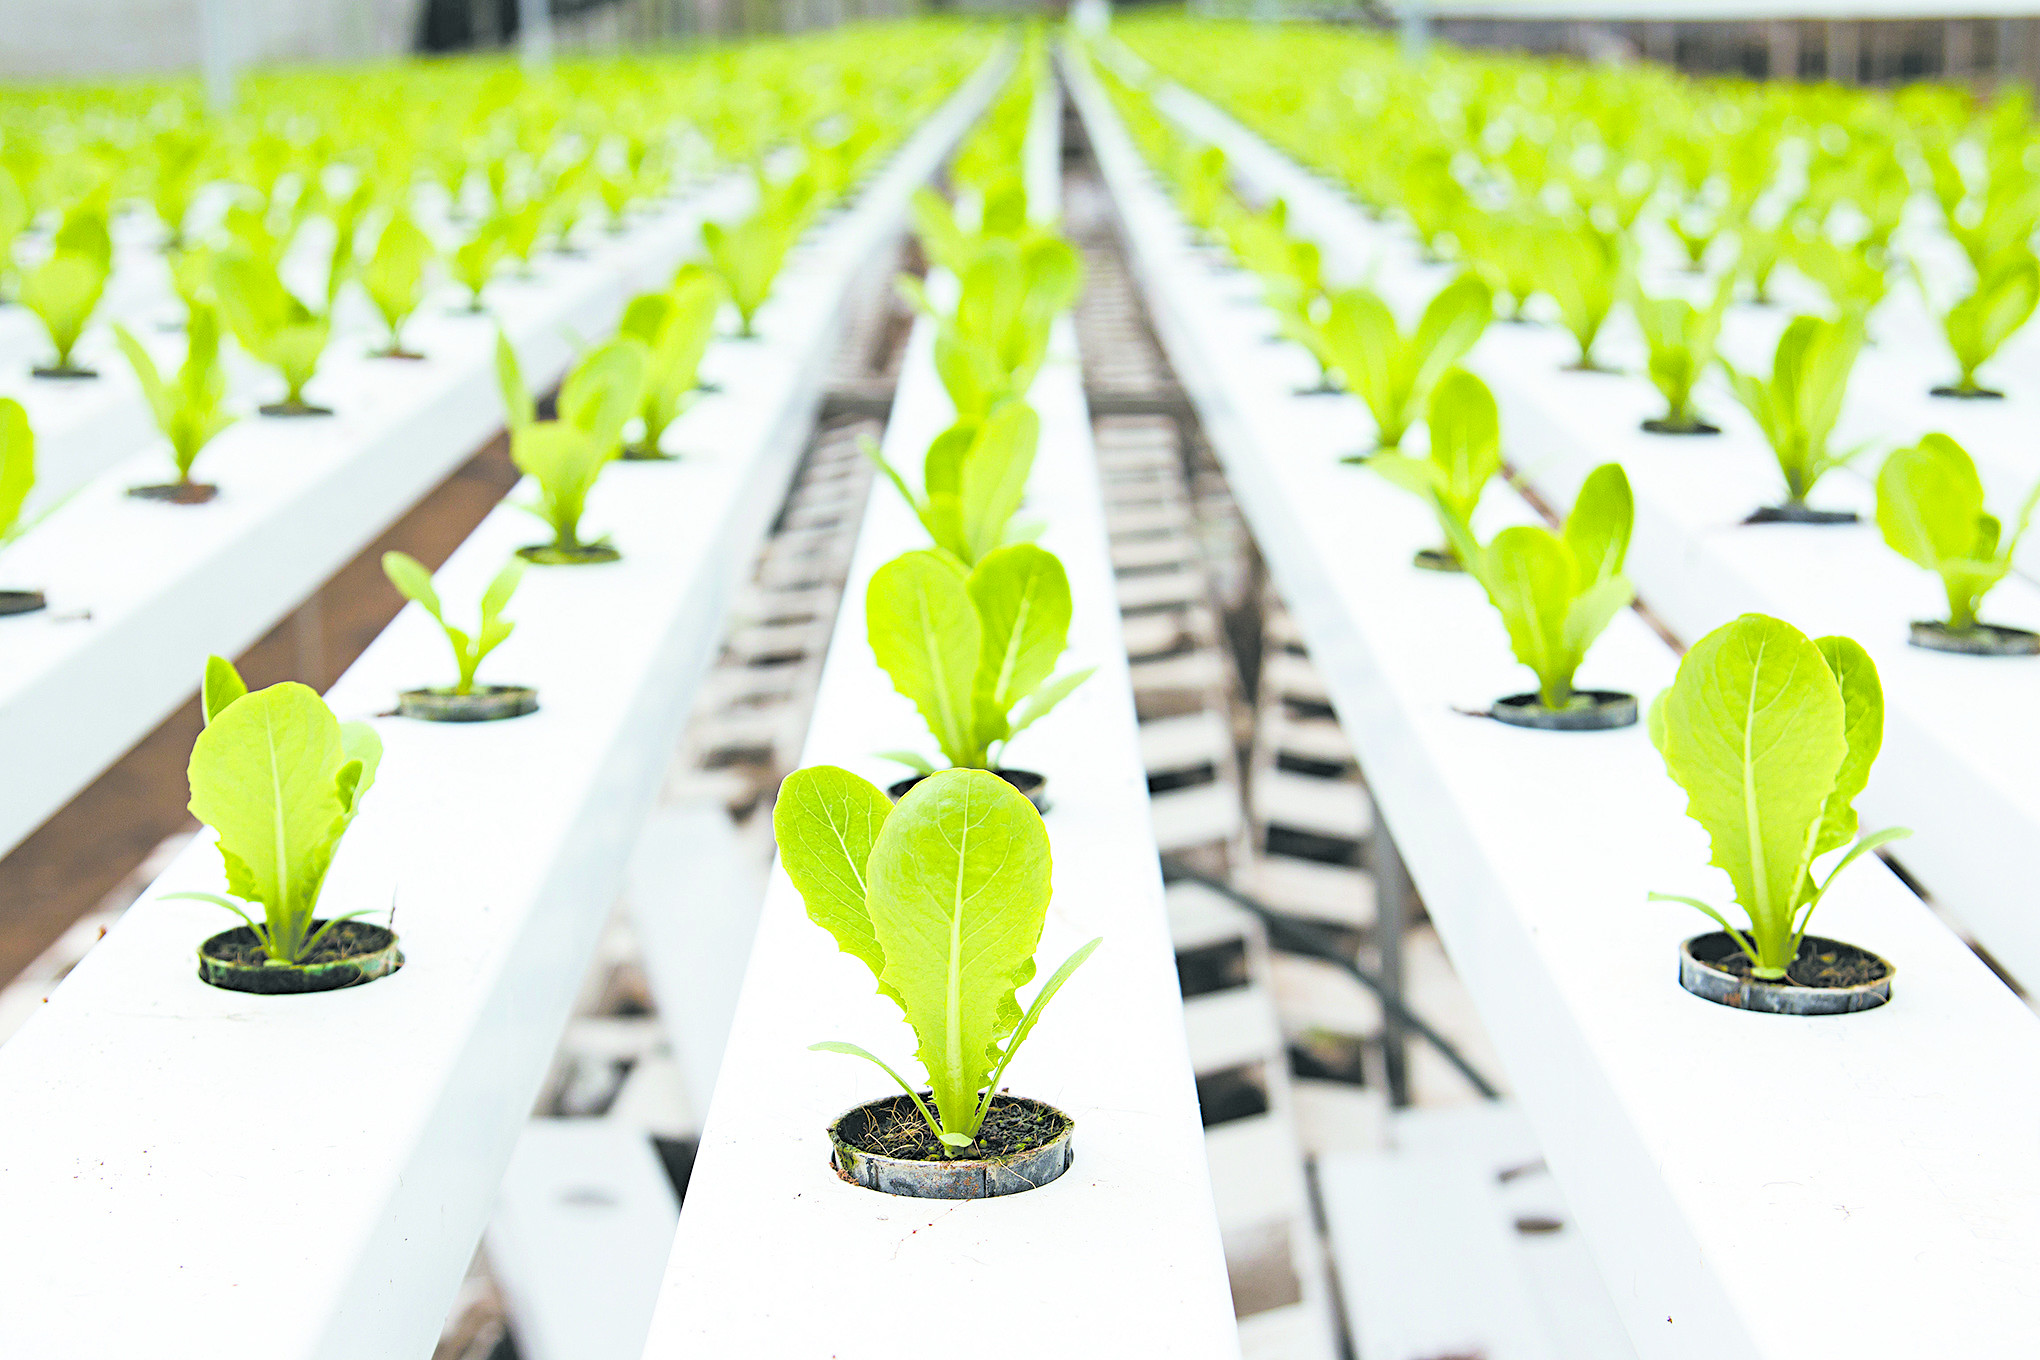 Hydroponic vegetable plantation